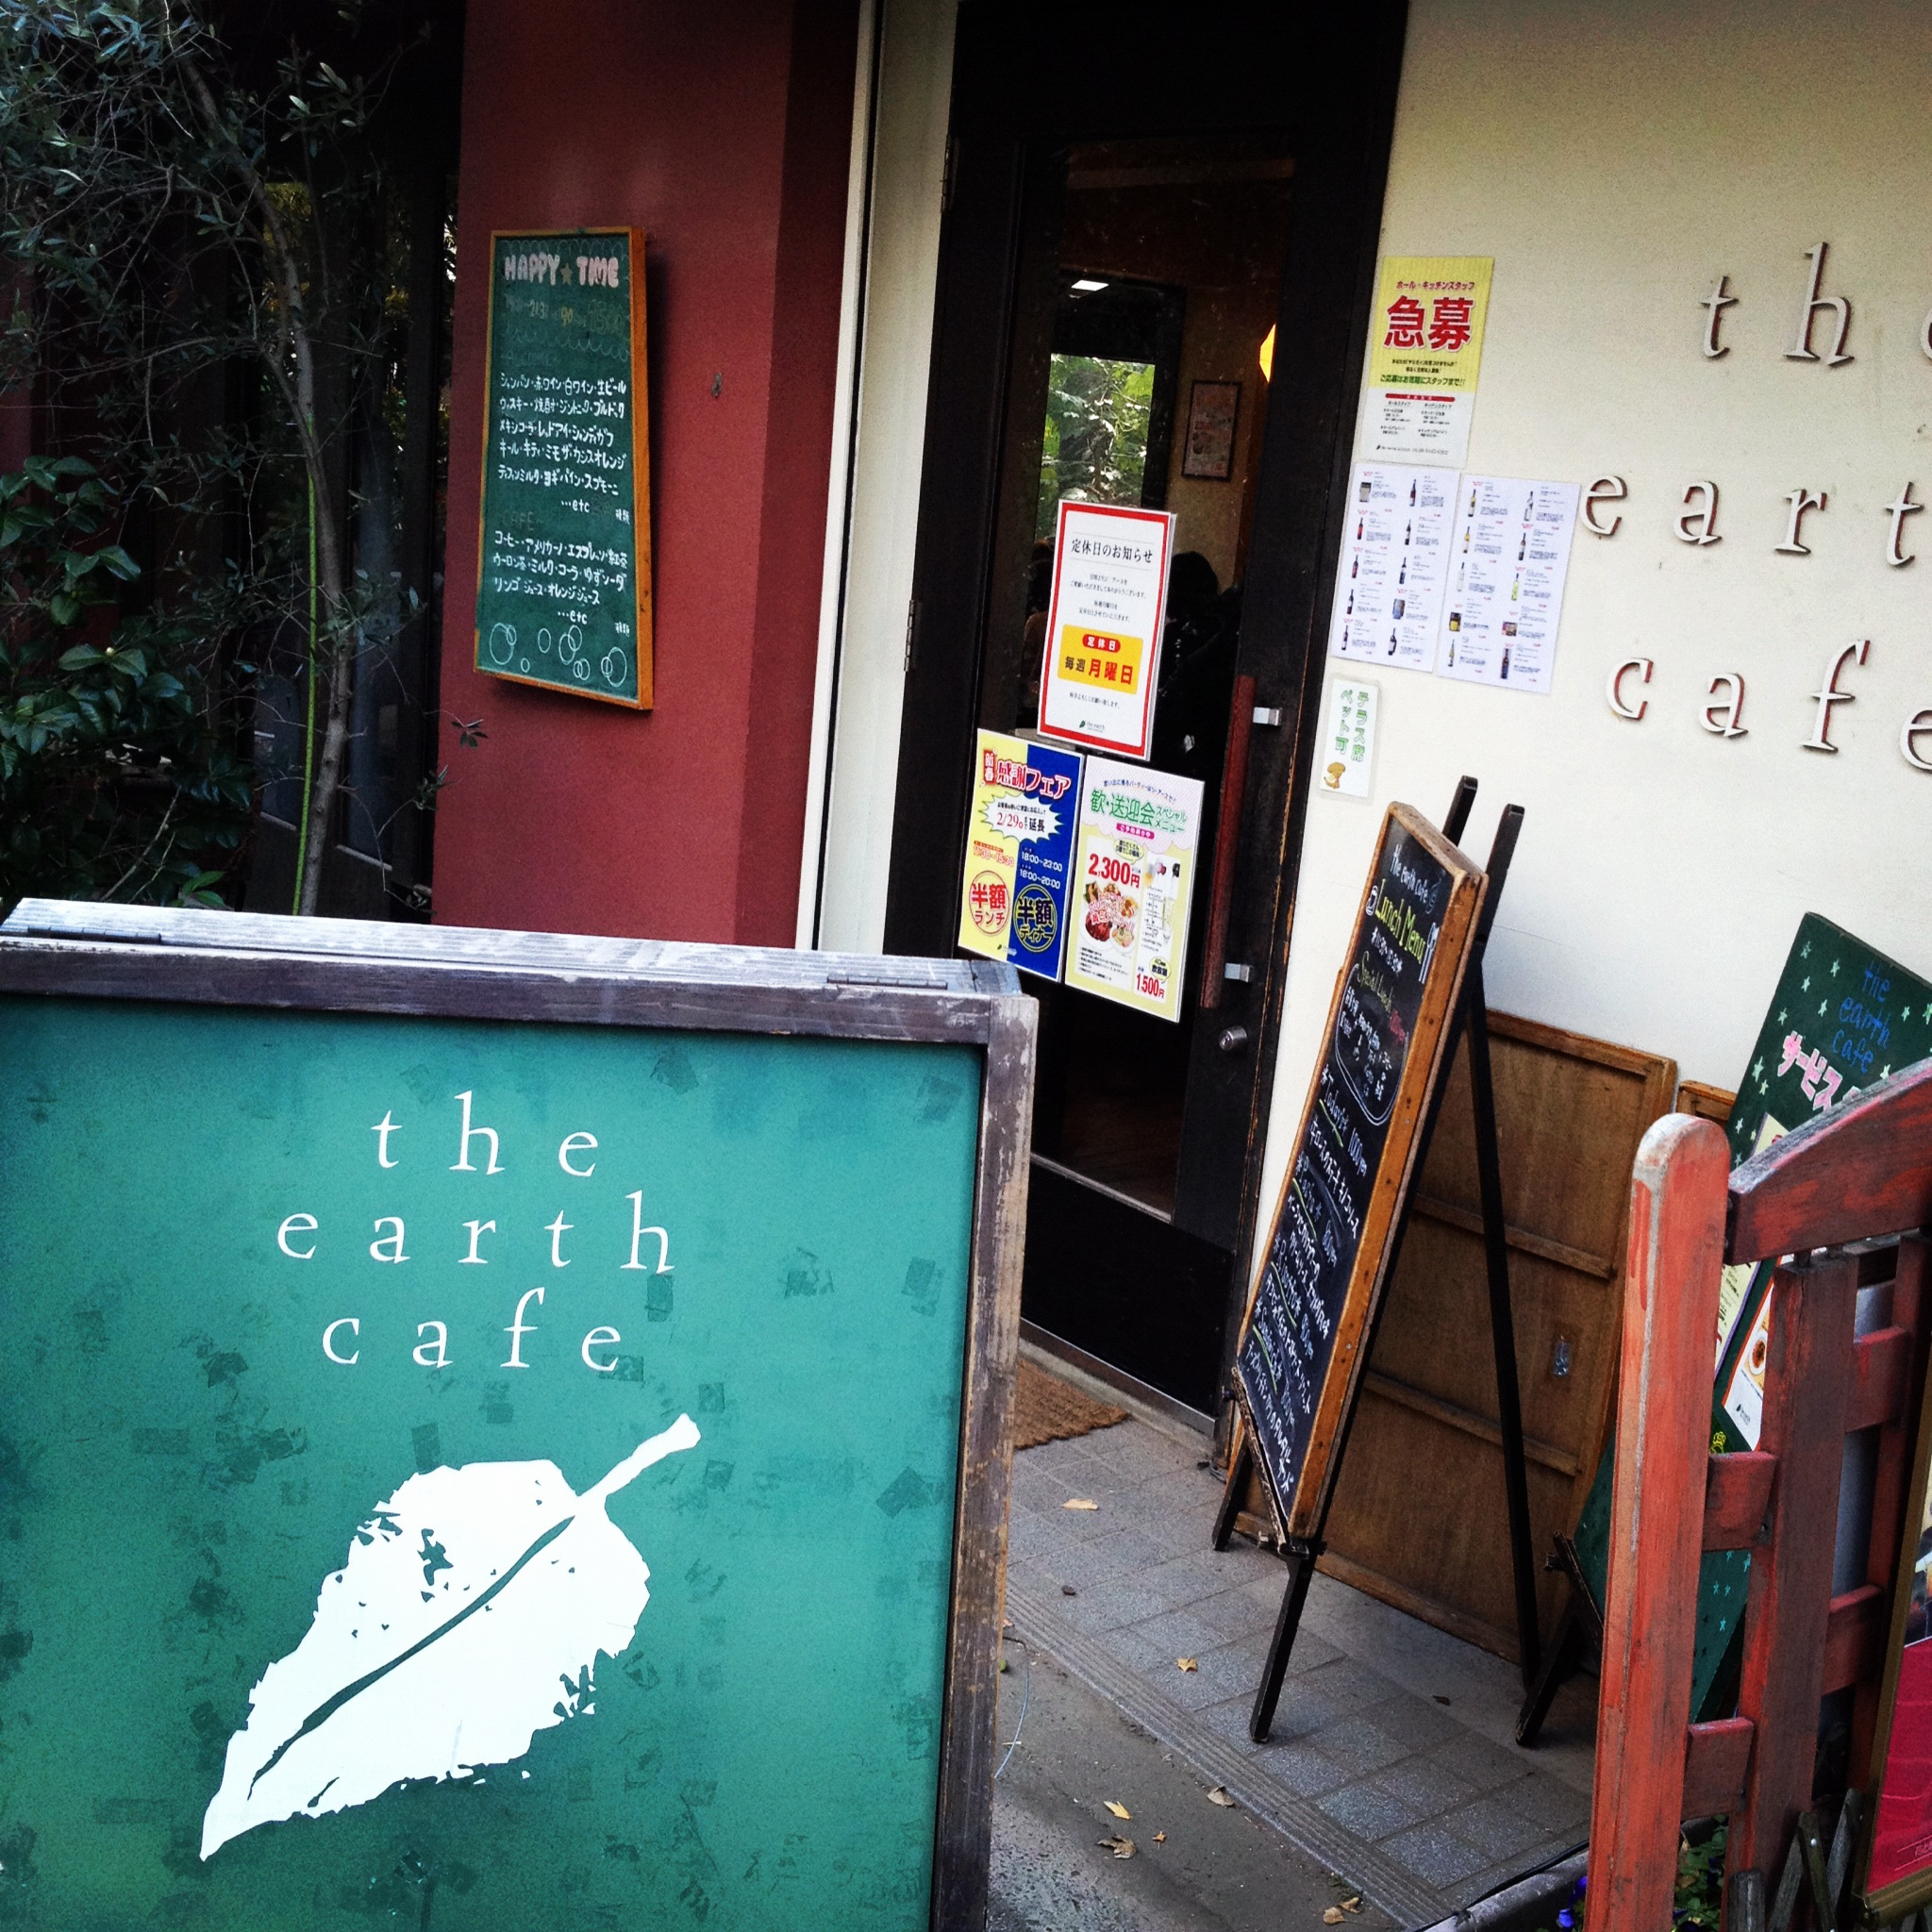 earth_cafe_2012-02-11_1.JPG